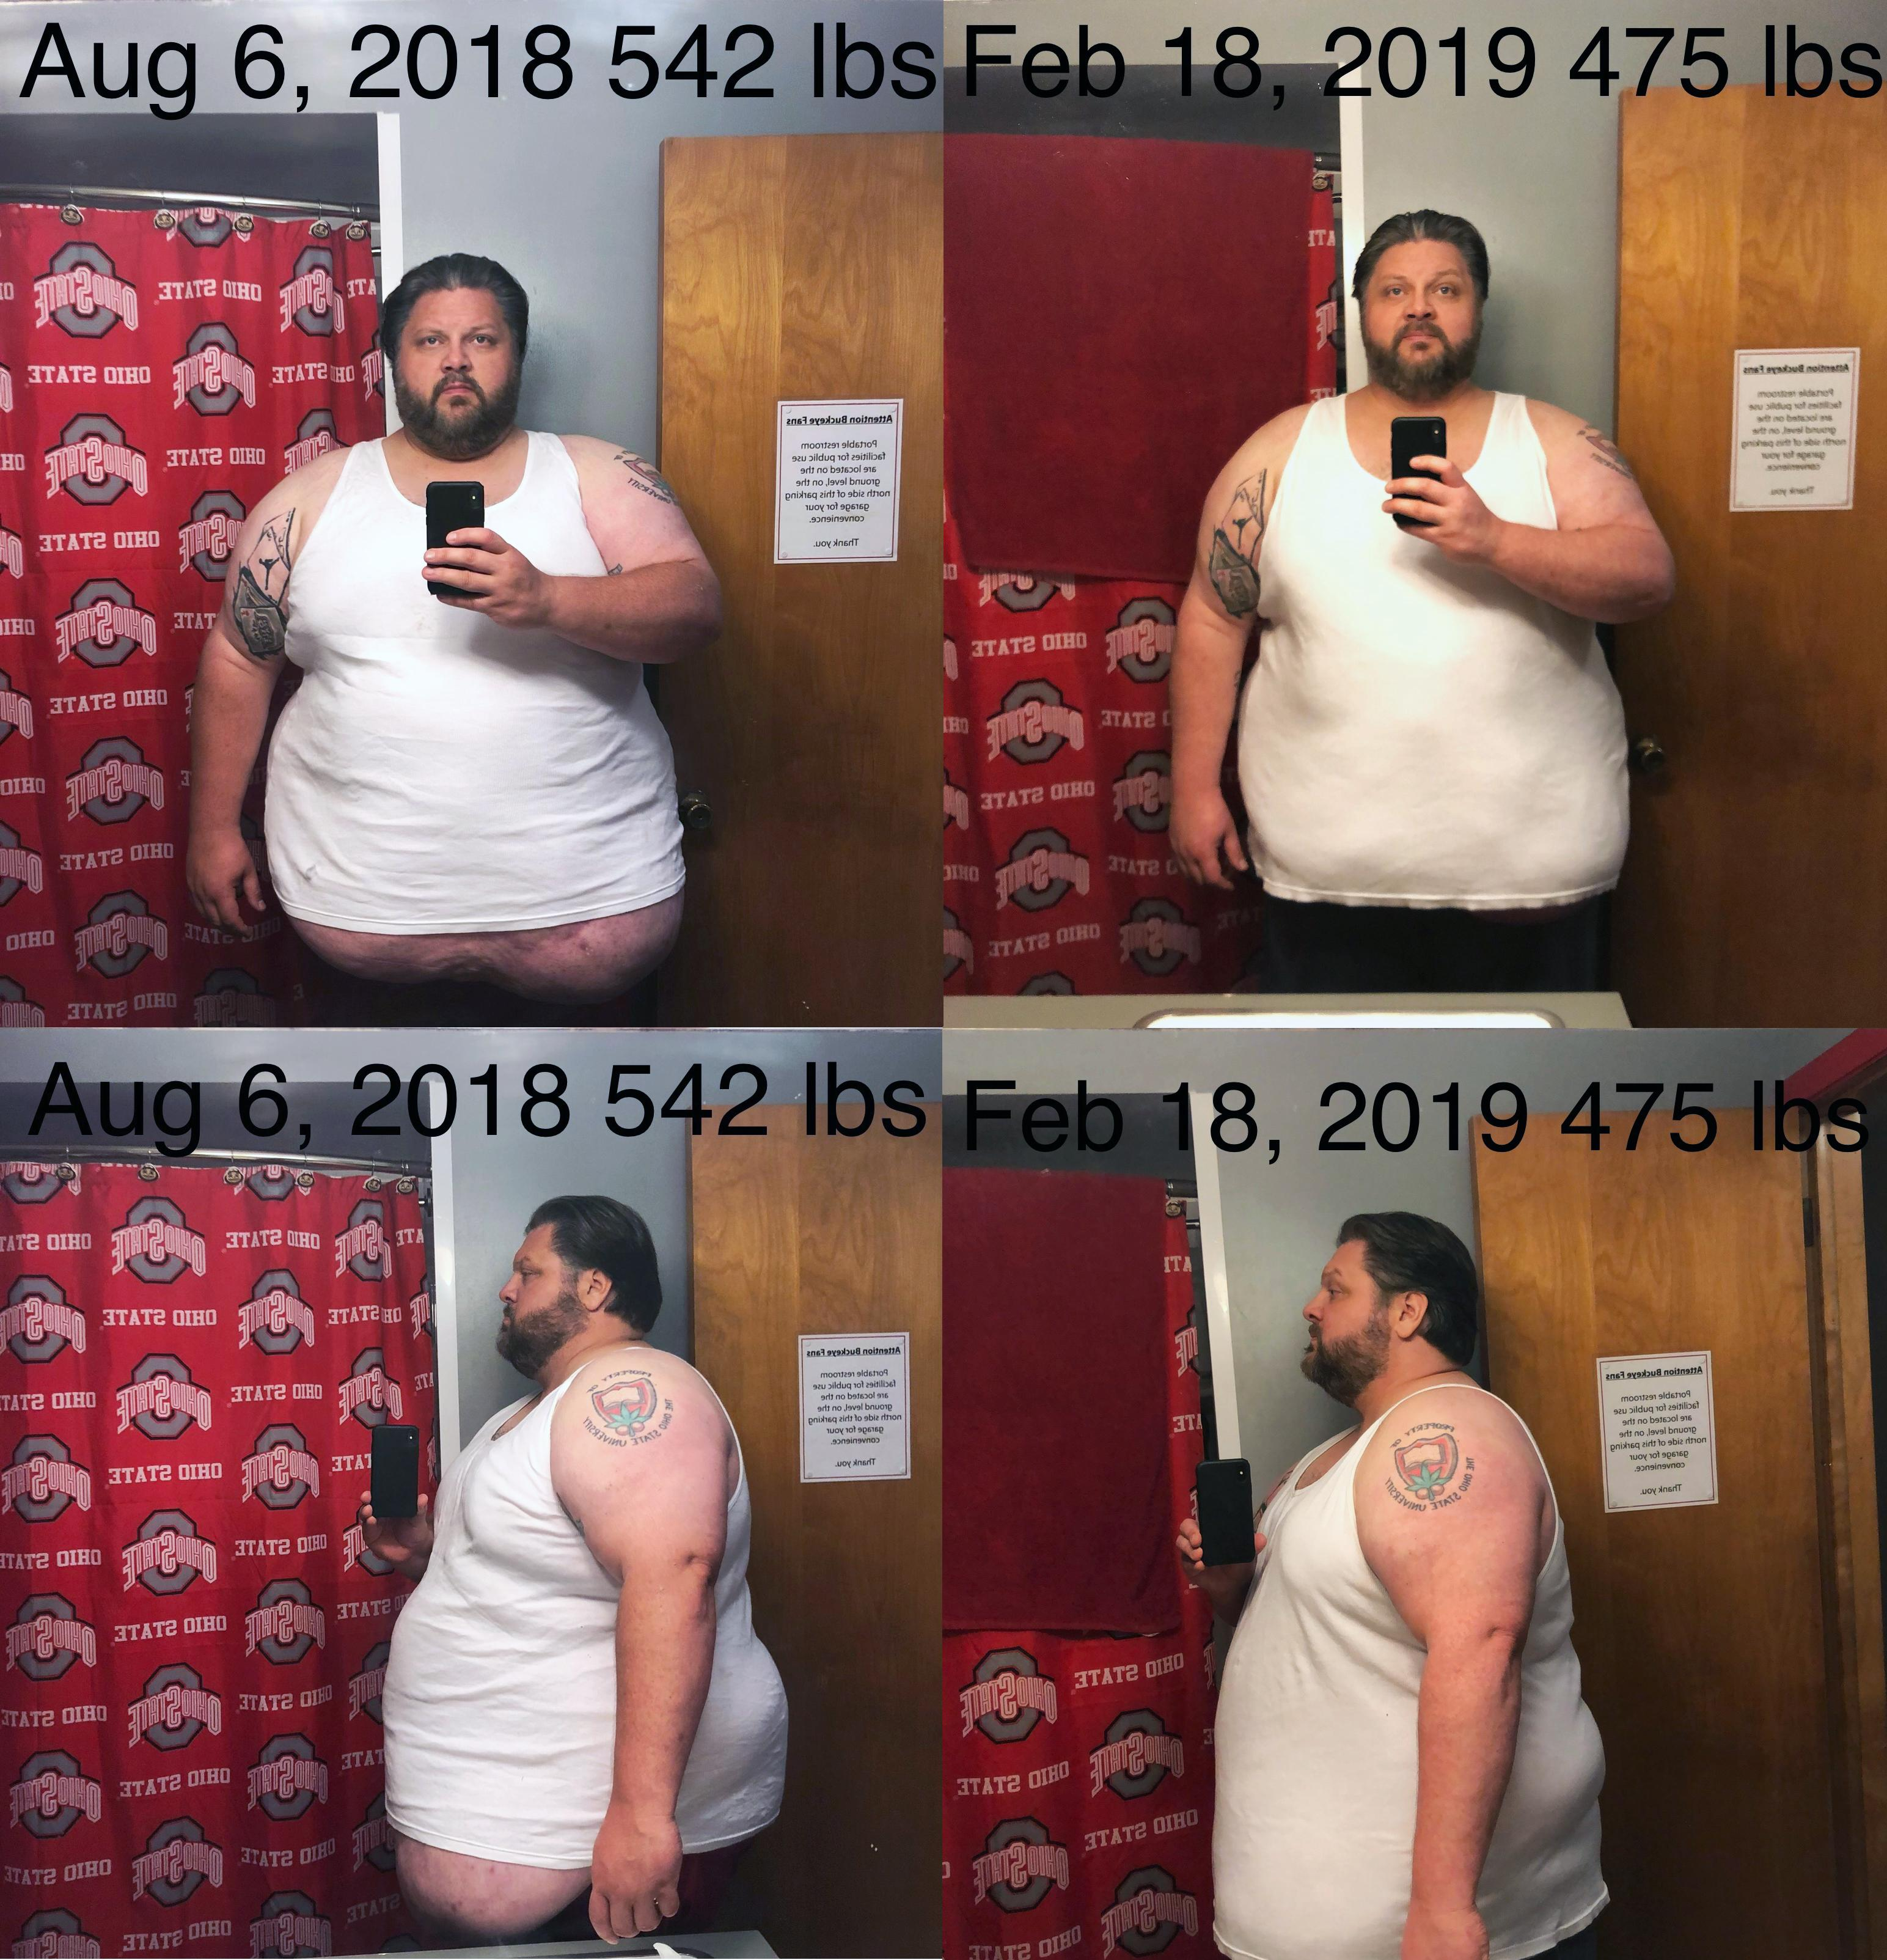 6 feet 1 Male Before and After 67 lbs Fat Loss 542 lbs to 475 lbs